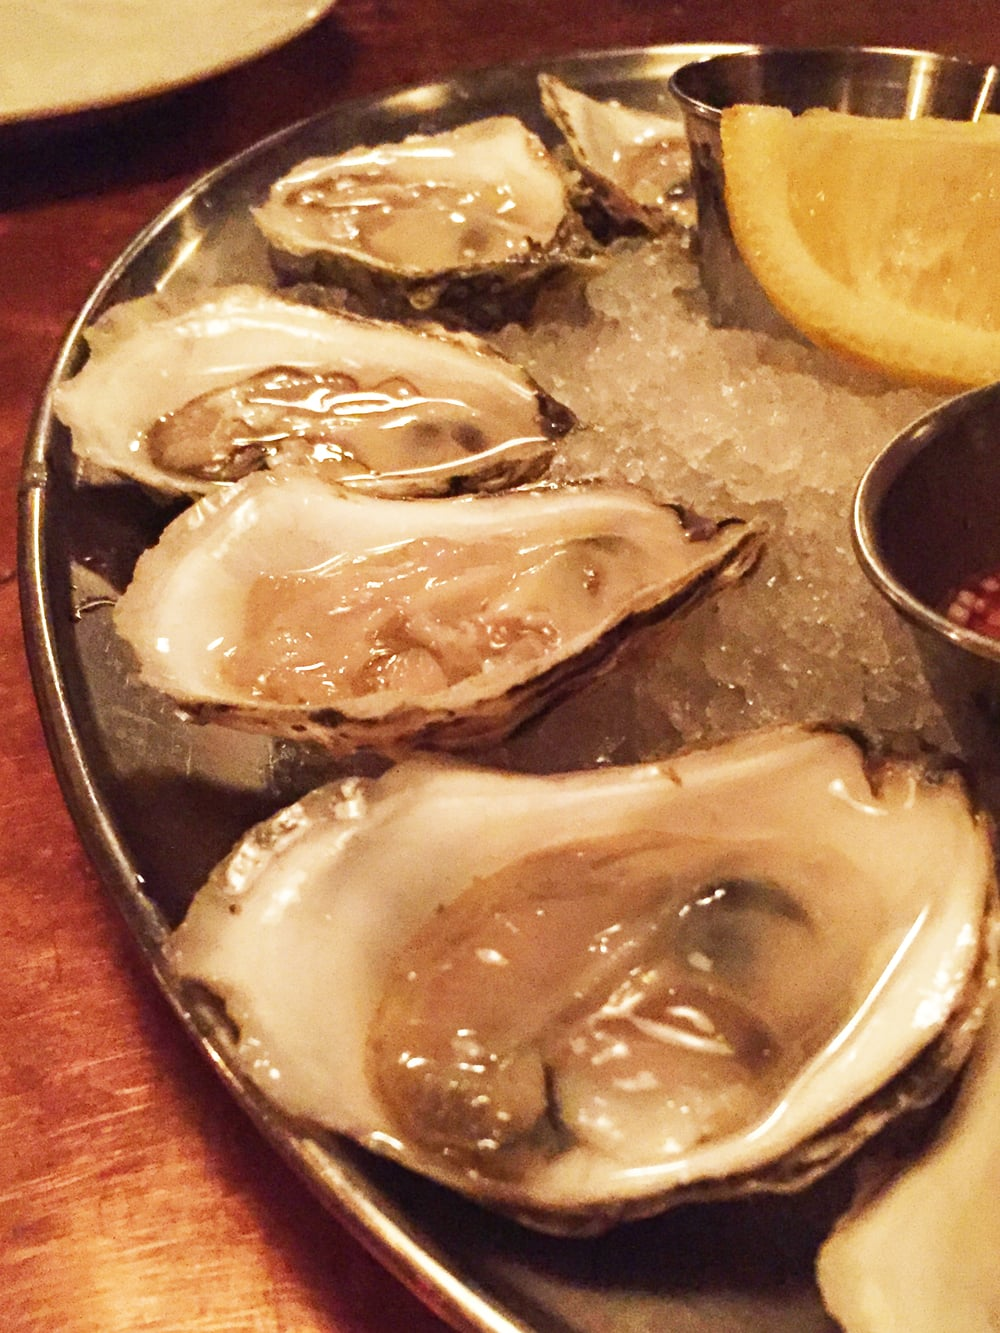 ½ Dozen Oysters on the Half Shell.